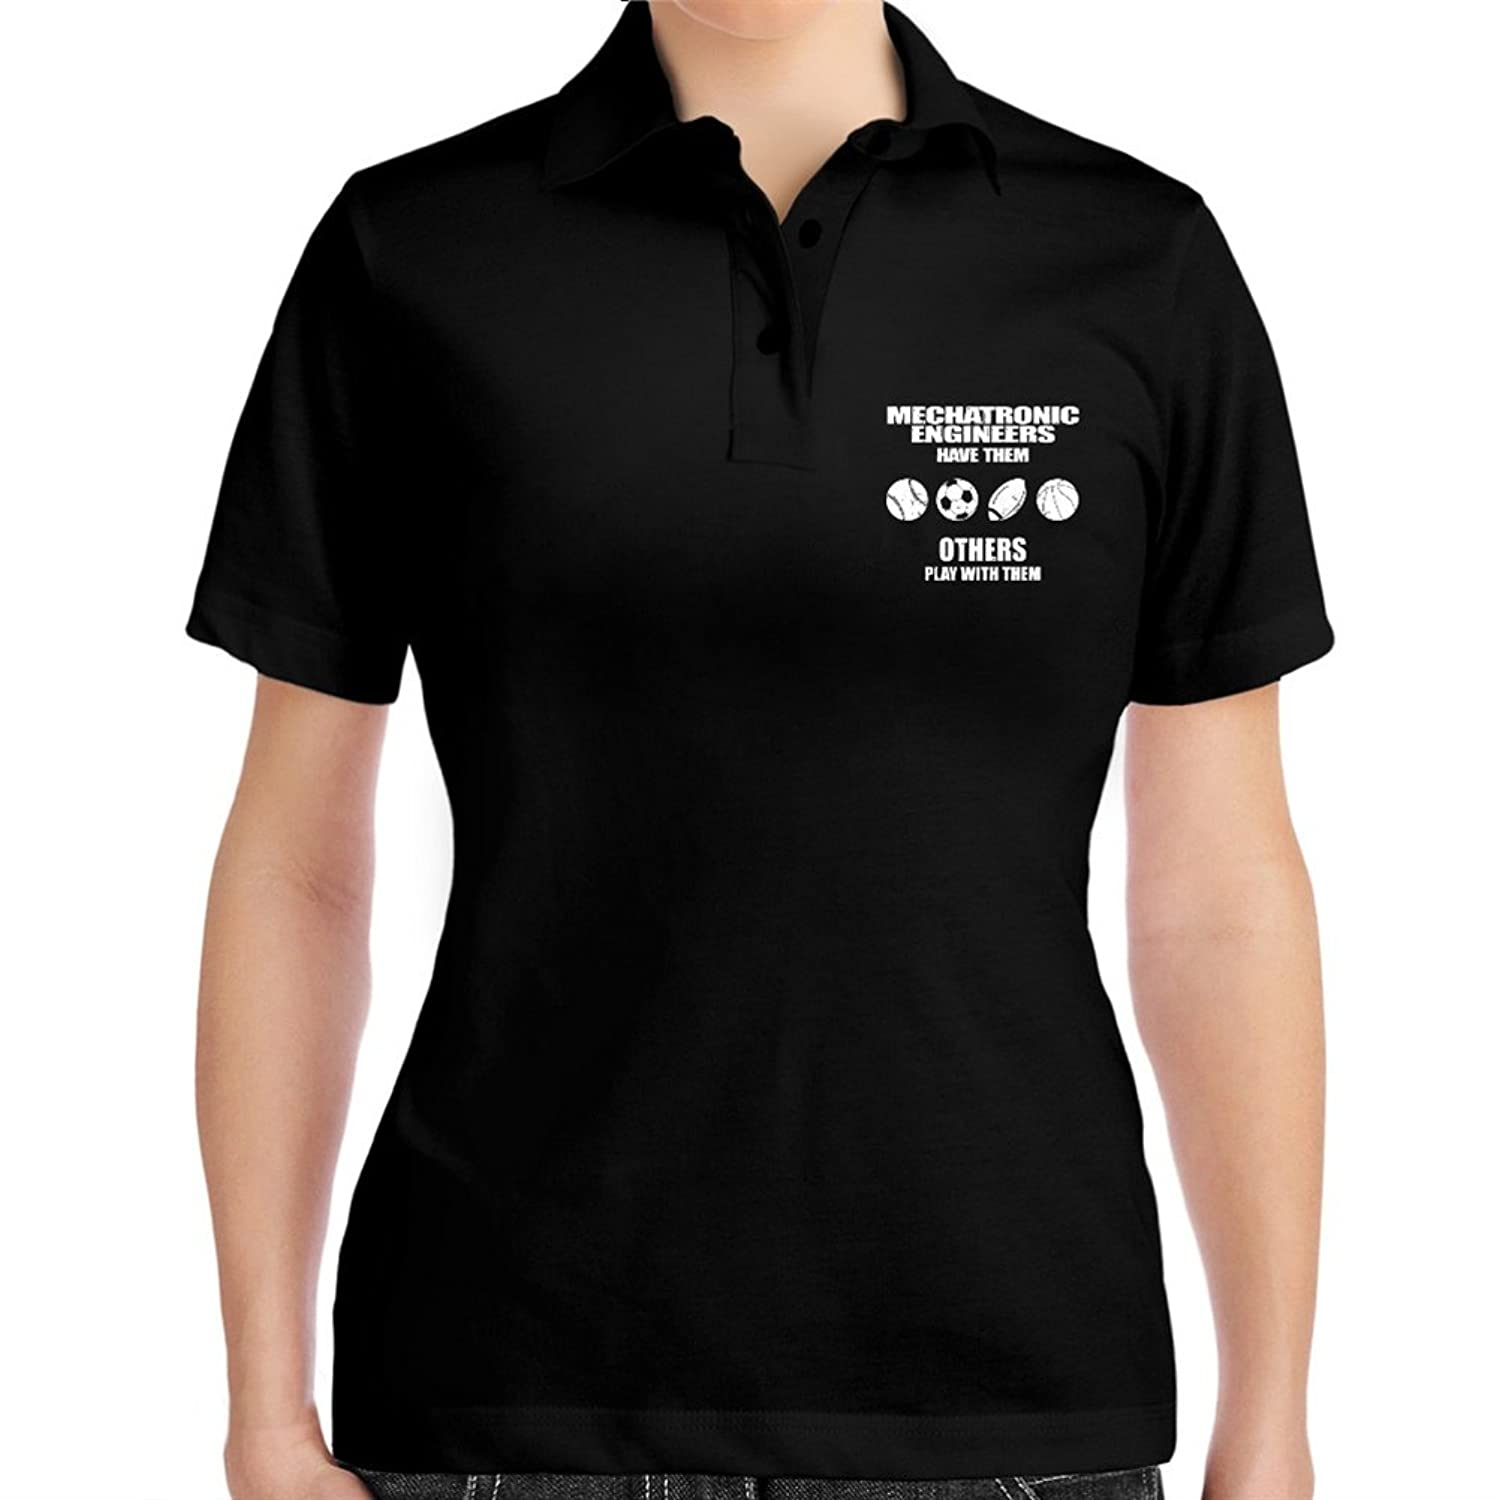 Mechatronic Engineer have them others play with them Women Polo Shirt